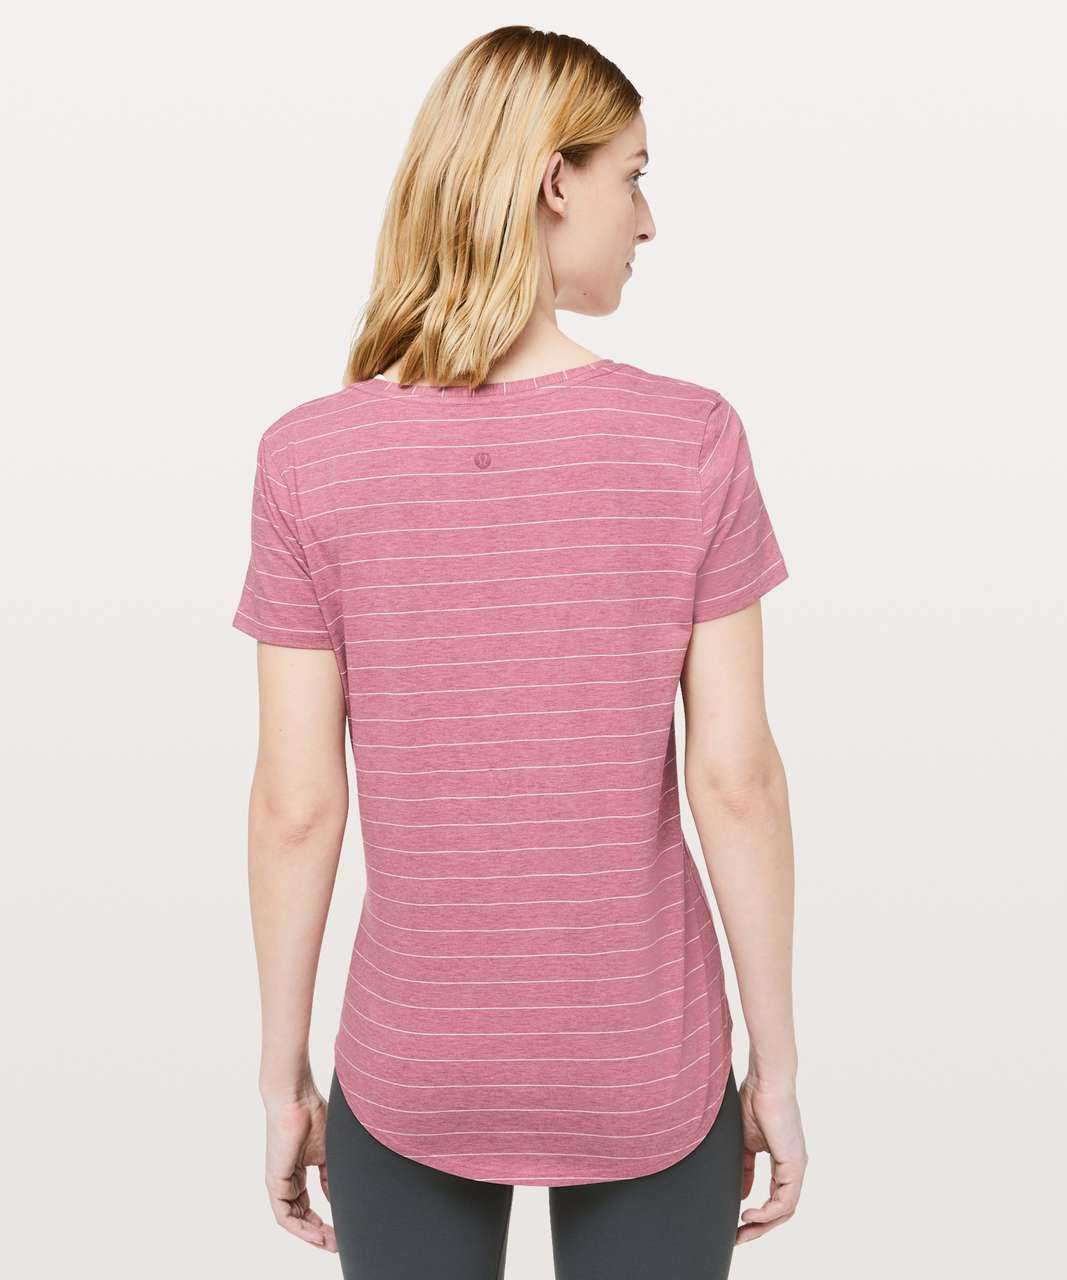 Lululemon Love Tee V - Short Serve Stripe Heathered So Merlot White